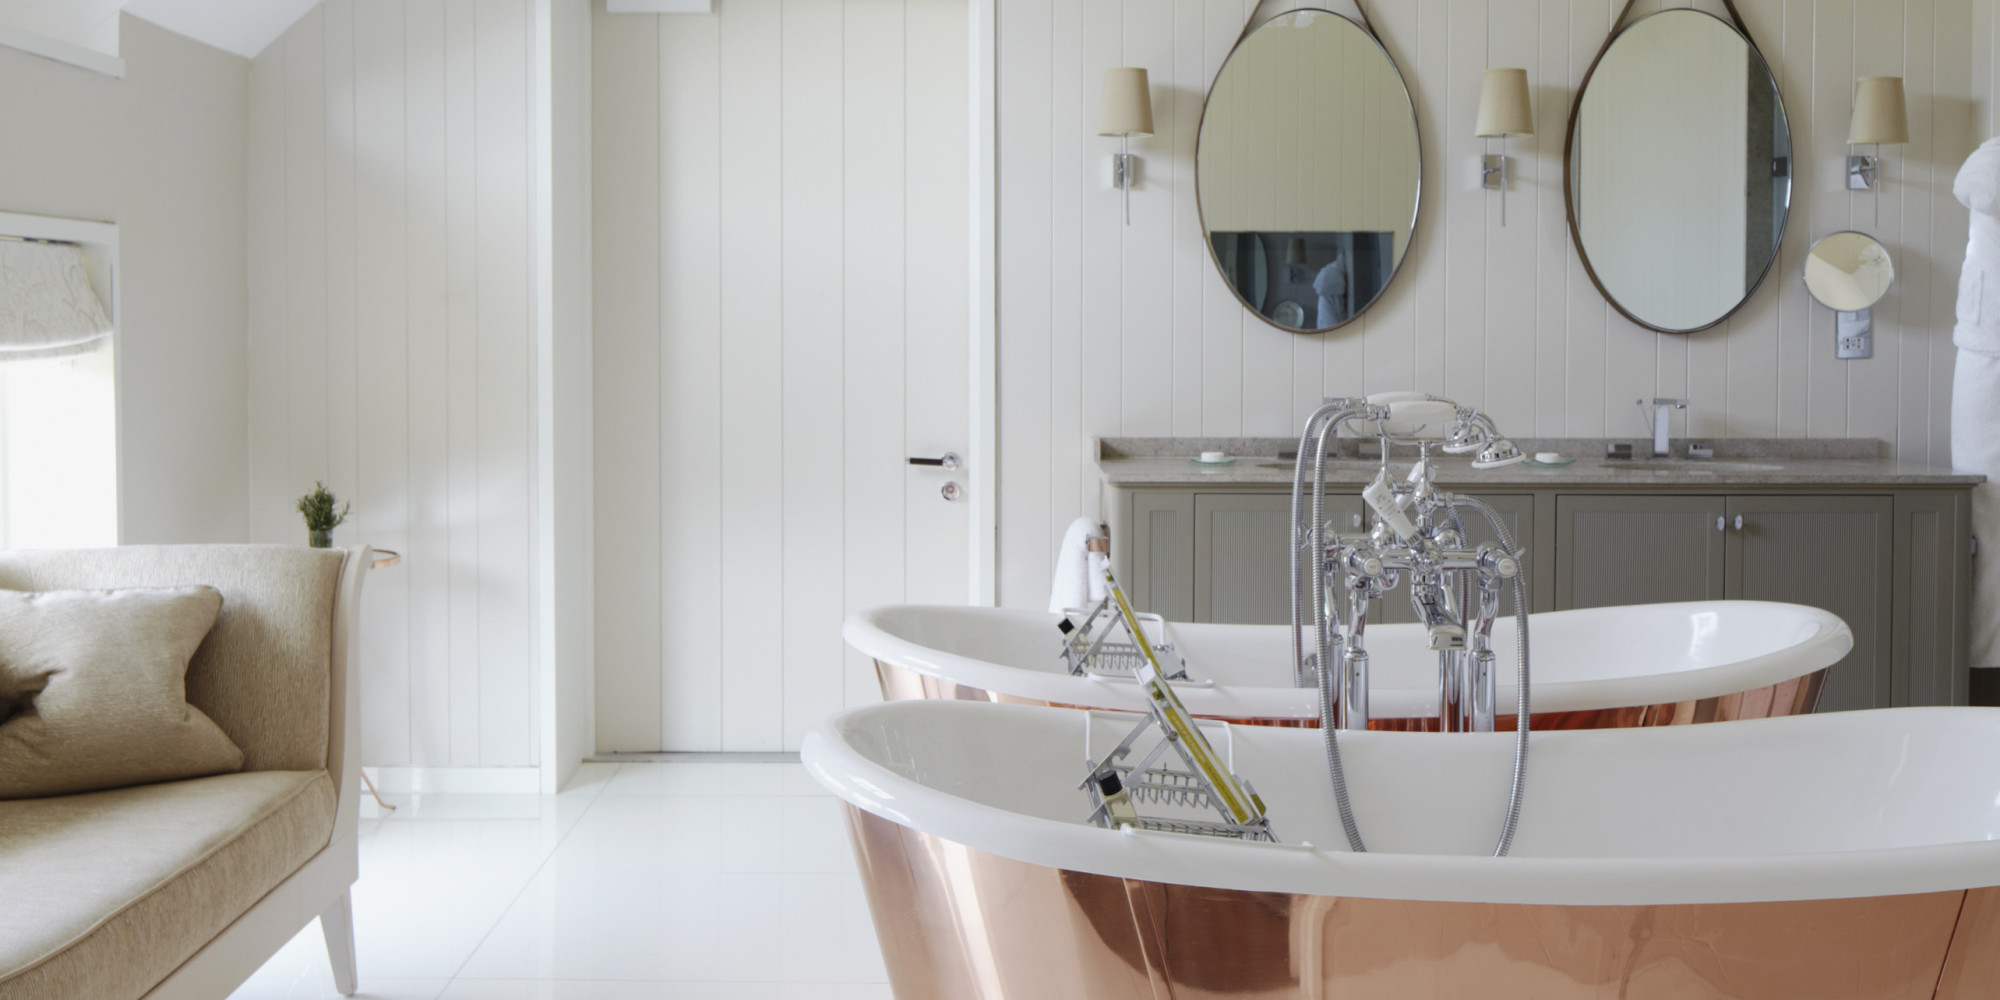 An Amazing Bathroom Makeover That Only Cost $400 | HuffPost on black and white bathroom shower curtains, houzz home design, houzz shower tile design, bathroom shower curtains and window curtains, contemporary bathroom shower curtains, rustic bathroom shower curtains,